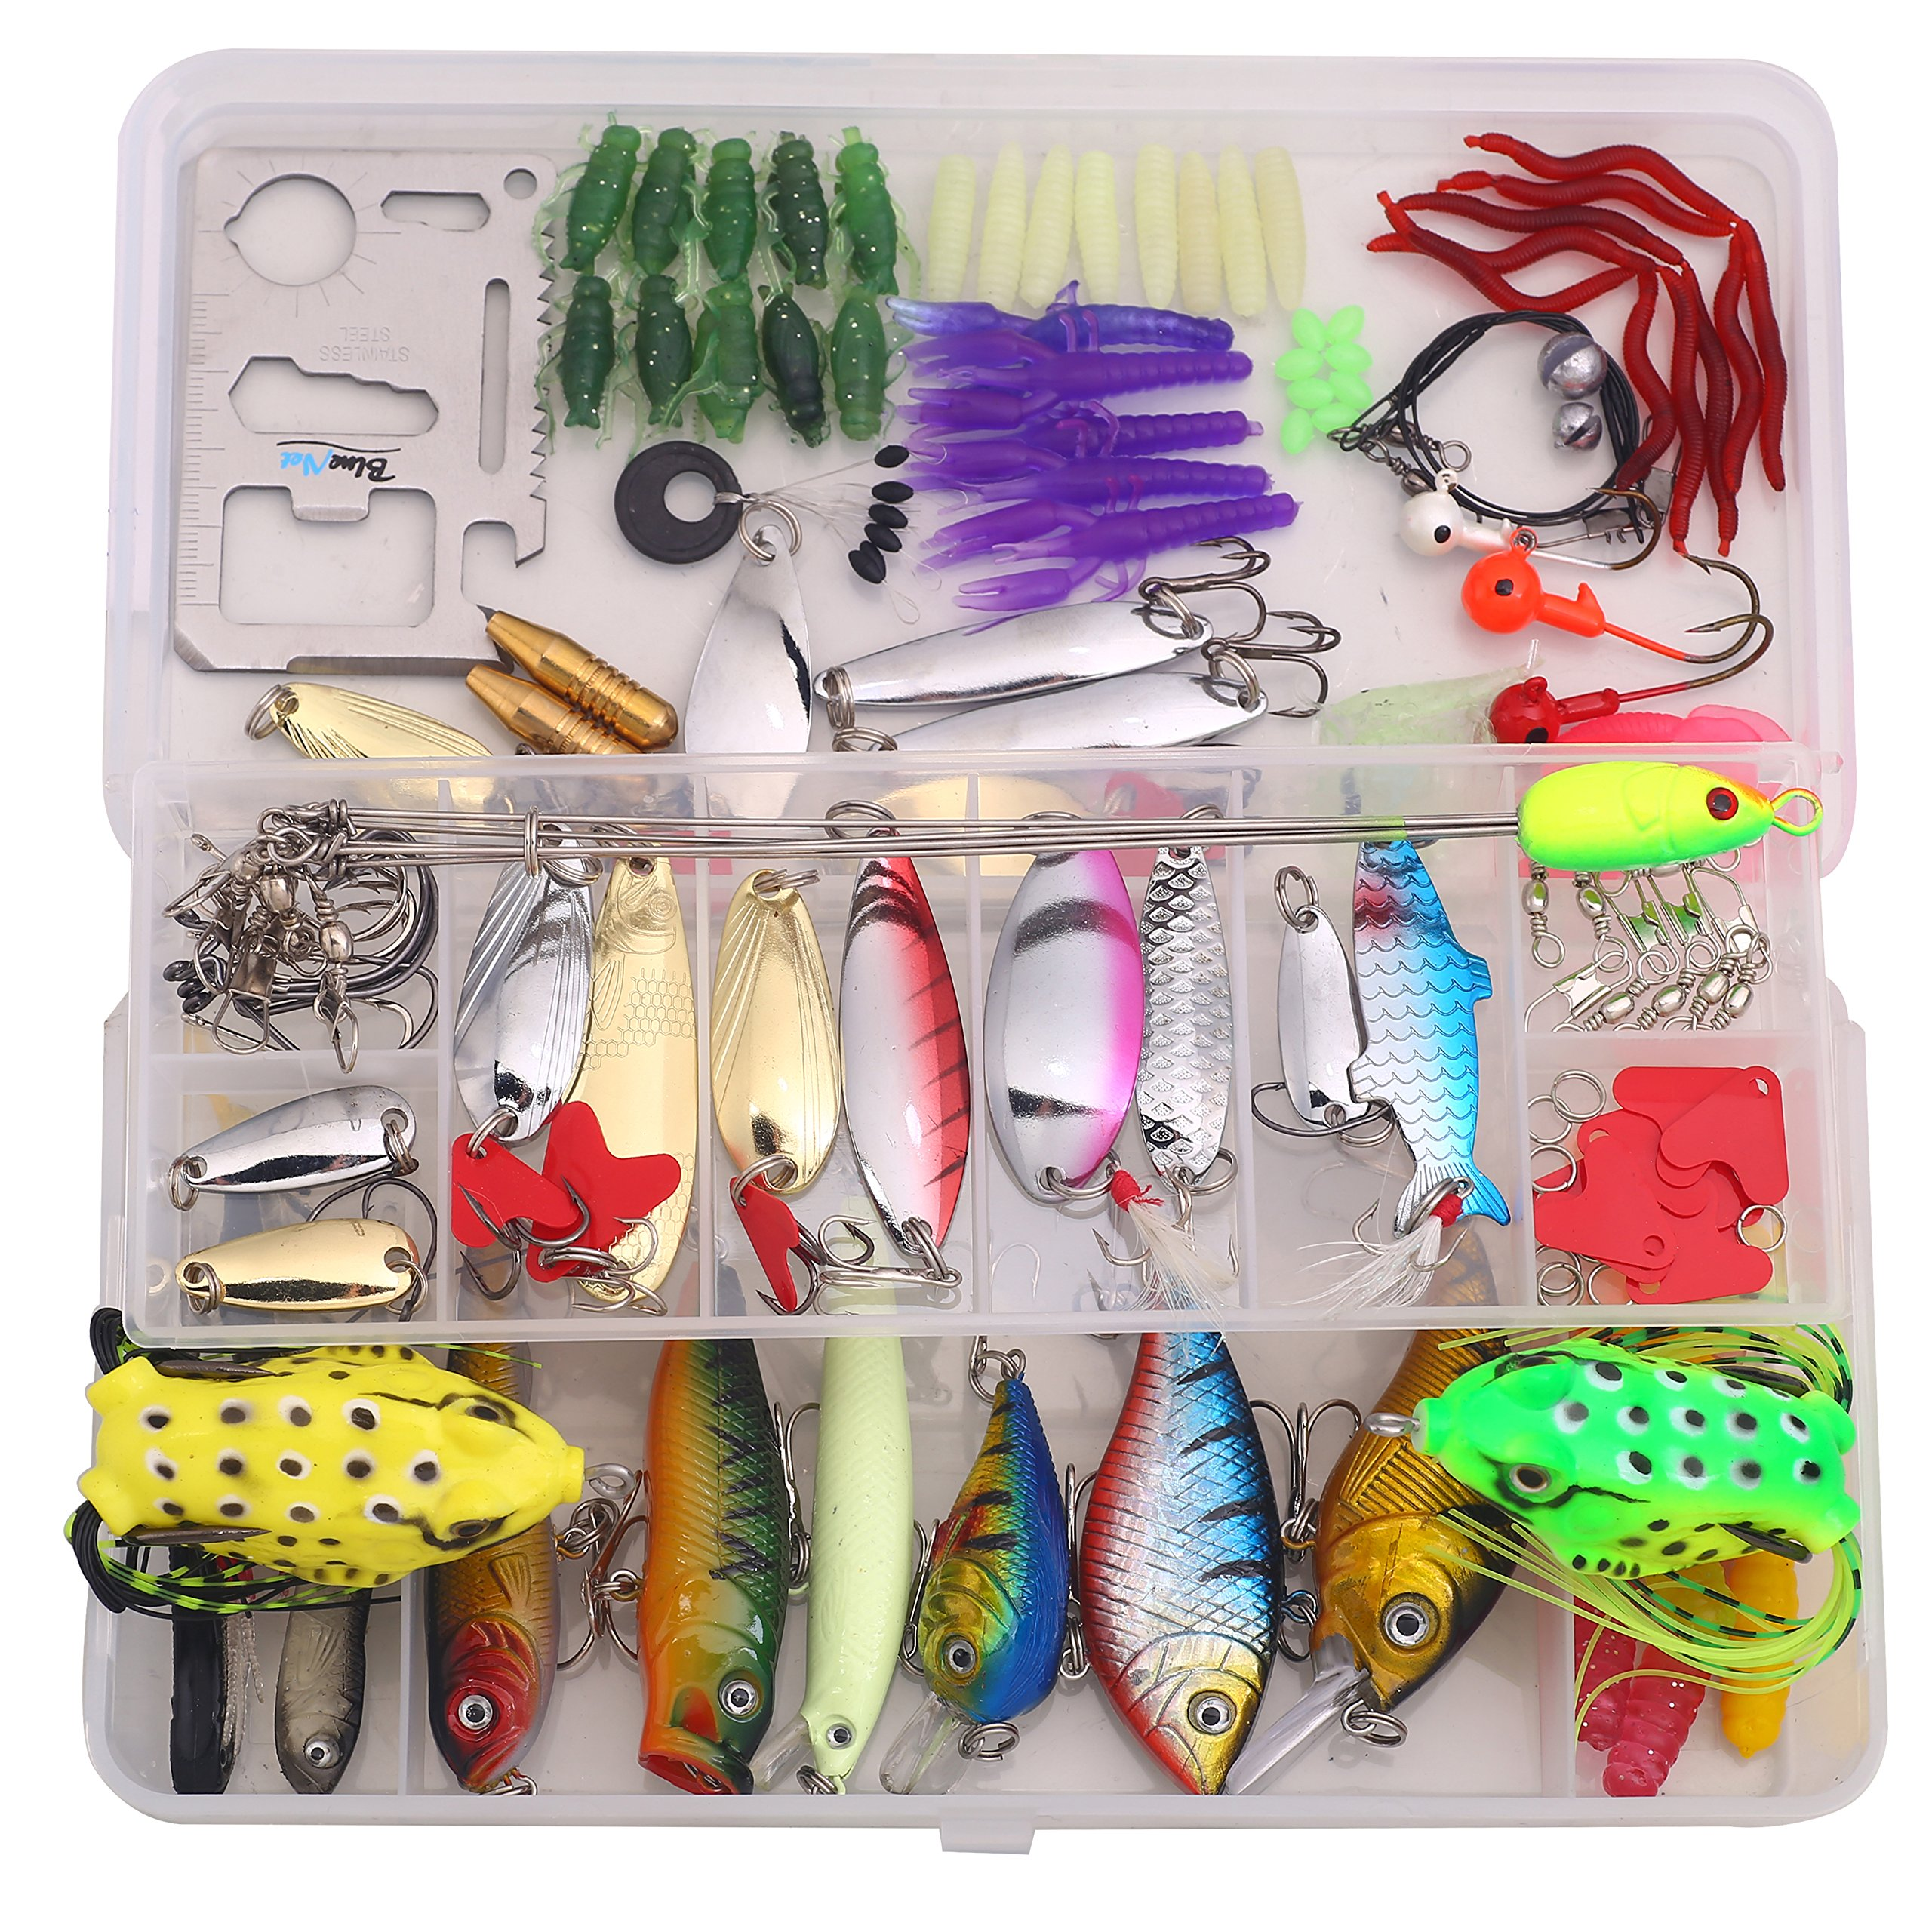 Bluenet Fishing Lures Set Fishing Lure Kit Freshwater with a Free Tackle Box